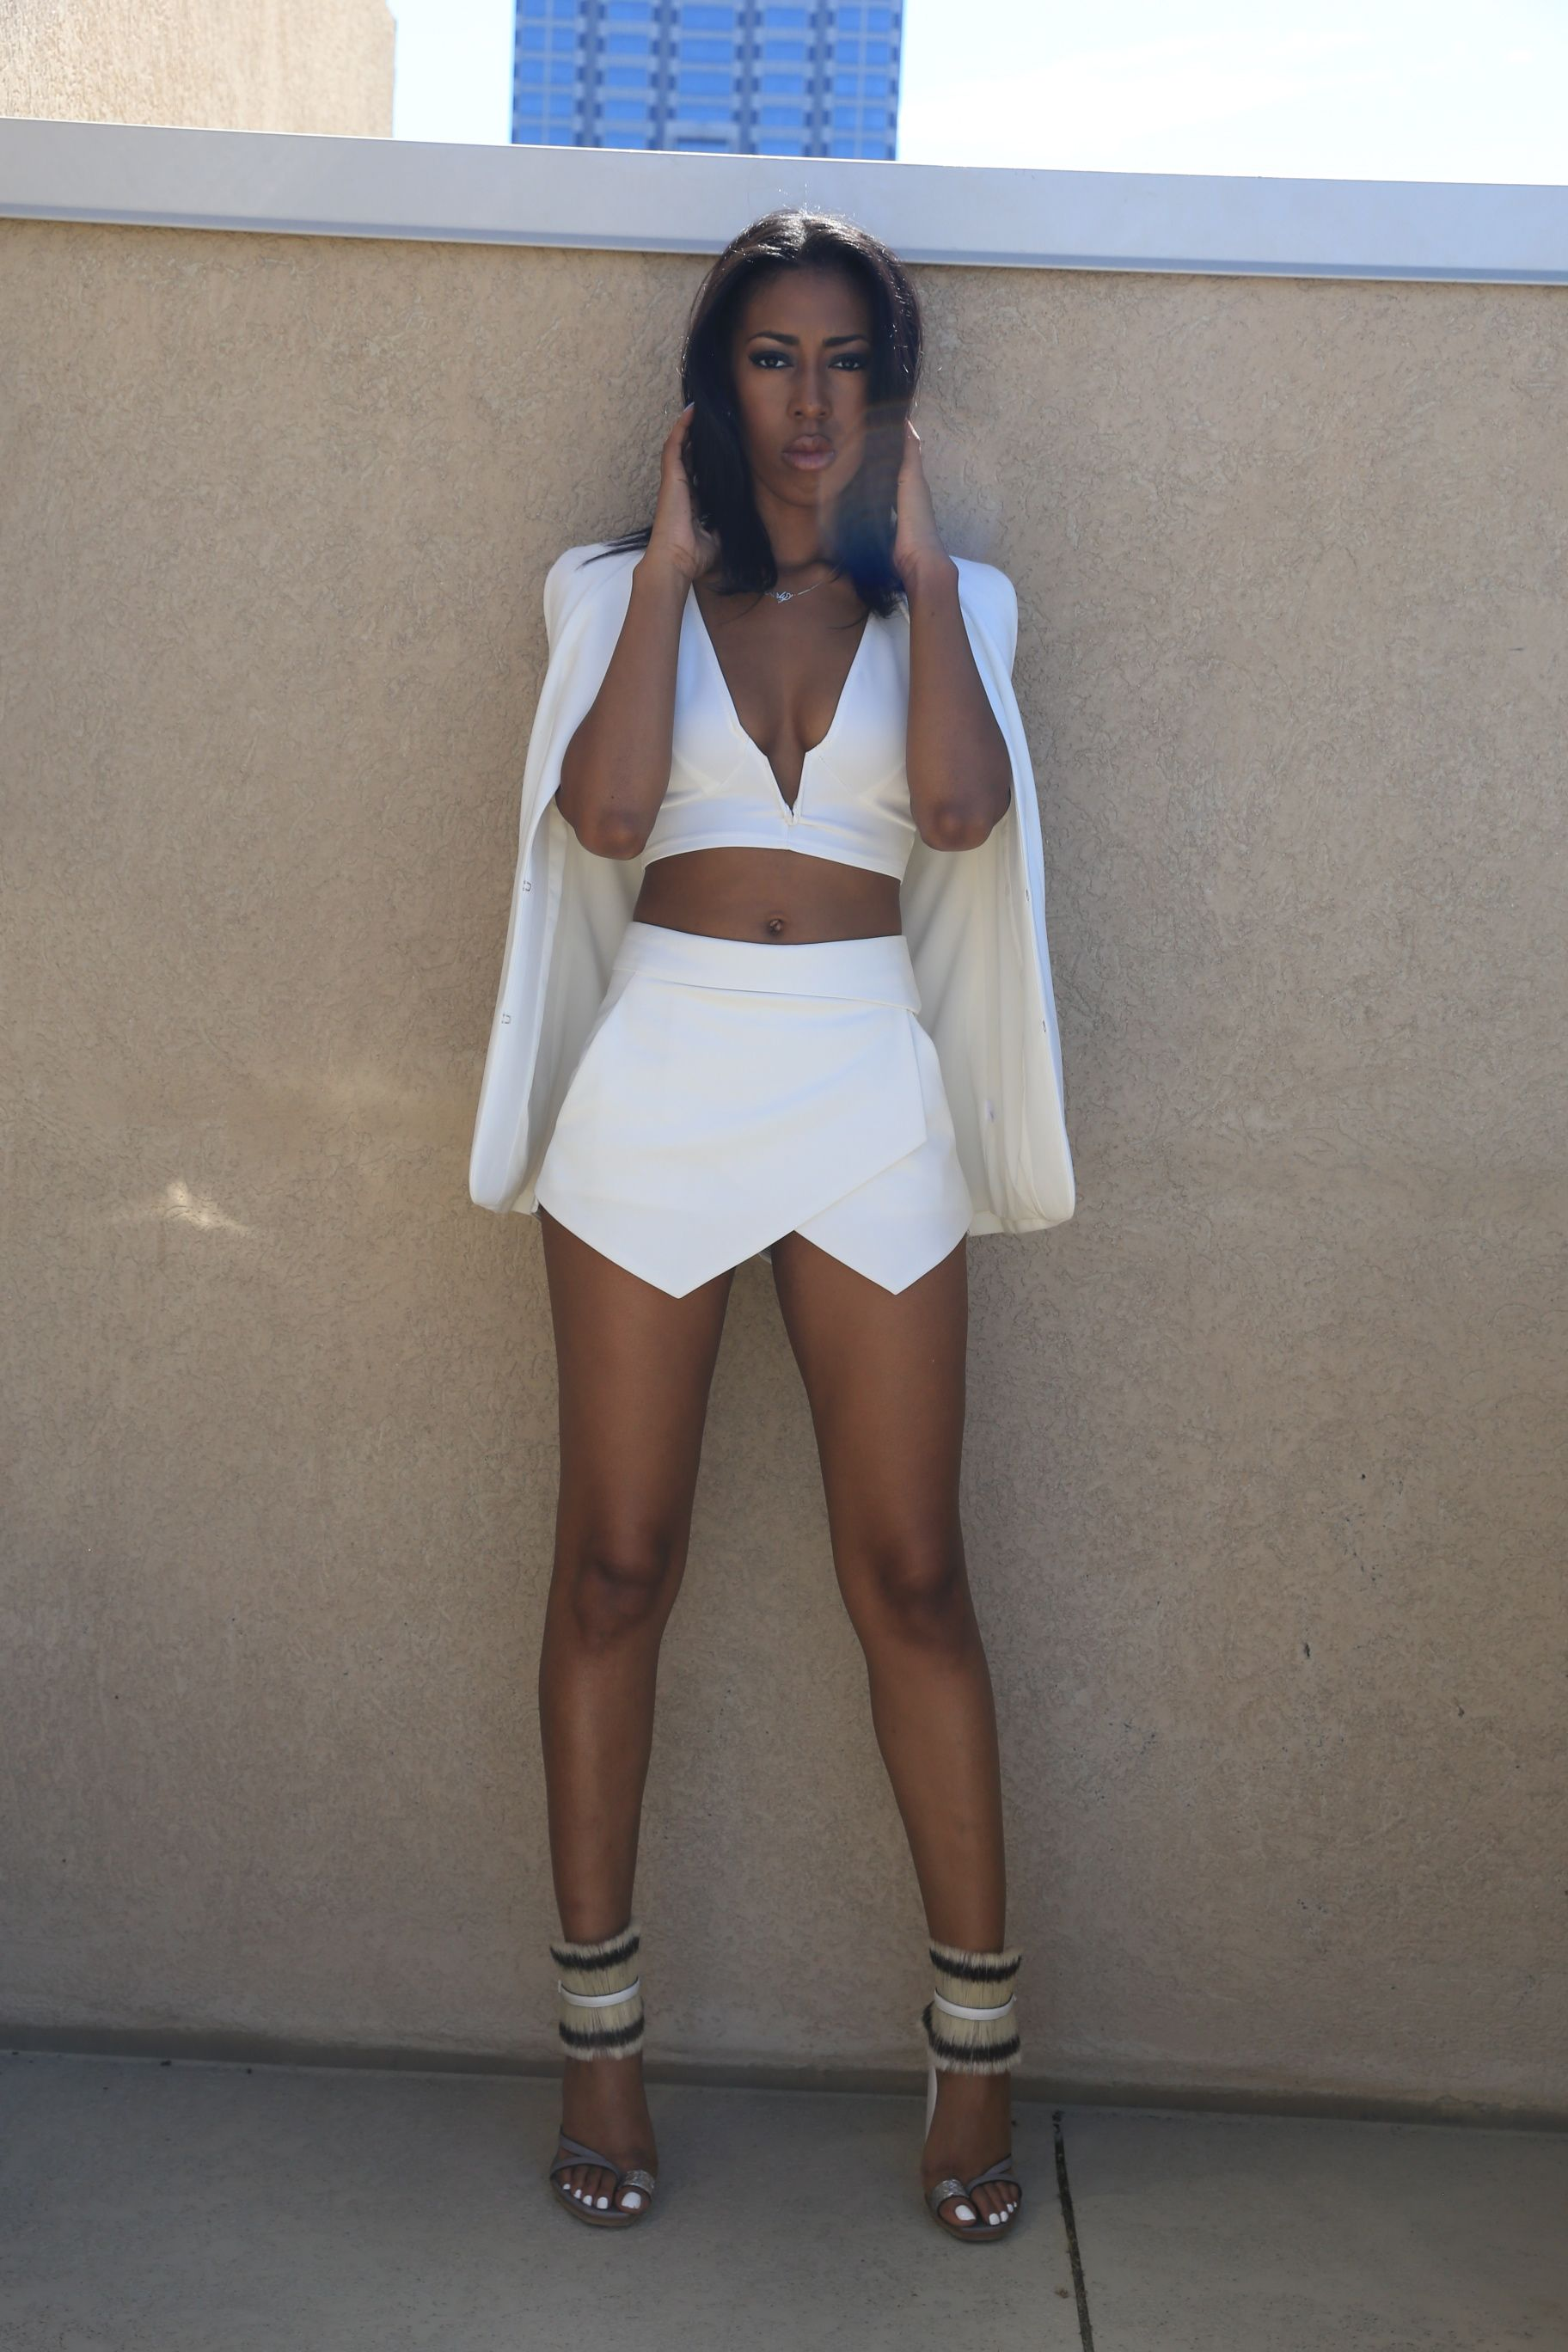 bcd01a5997b2 I love an all white outfit!  beverlyheels